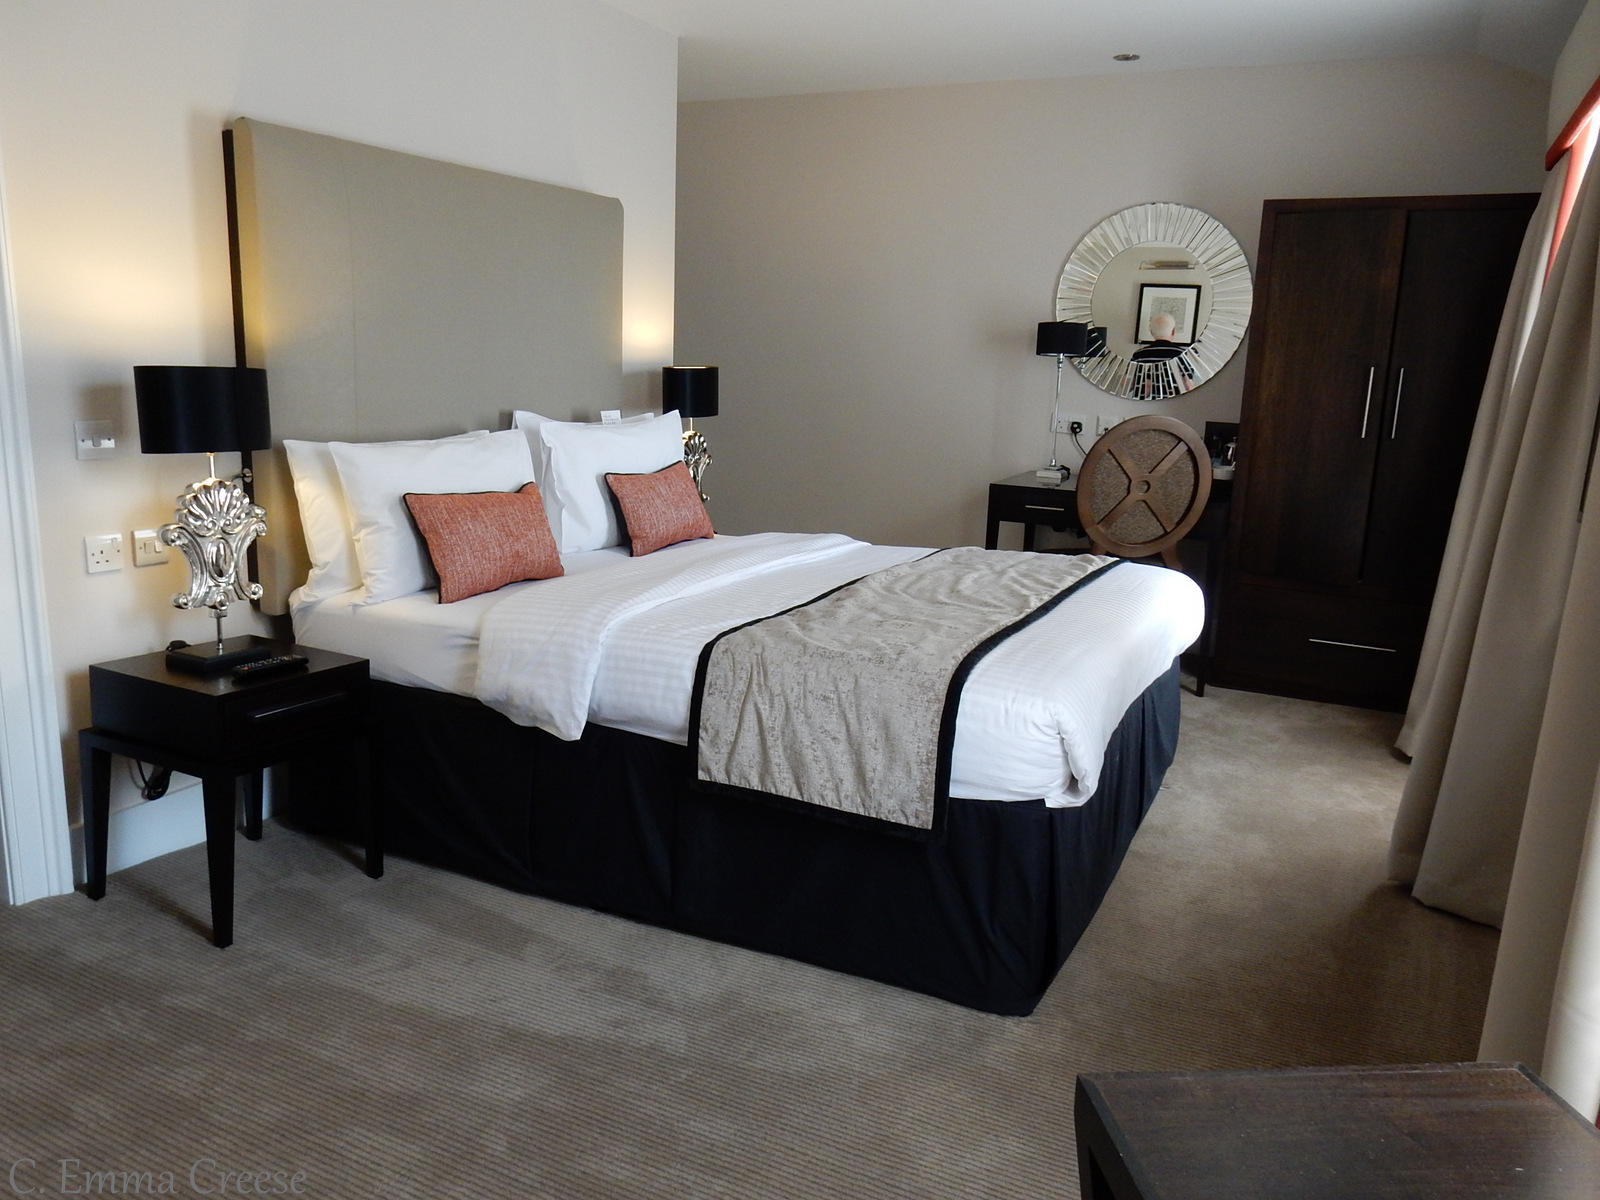 Combined Hotel Rooms